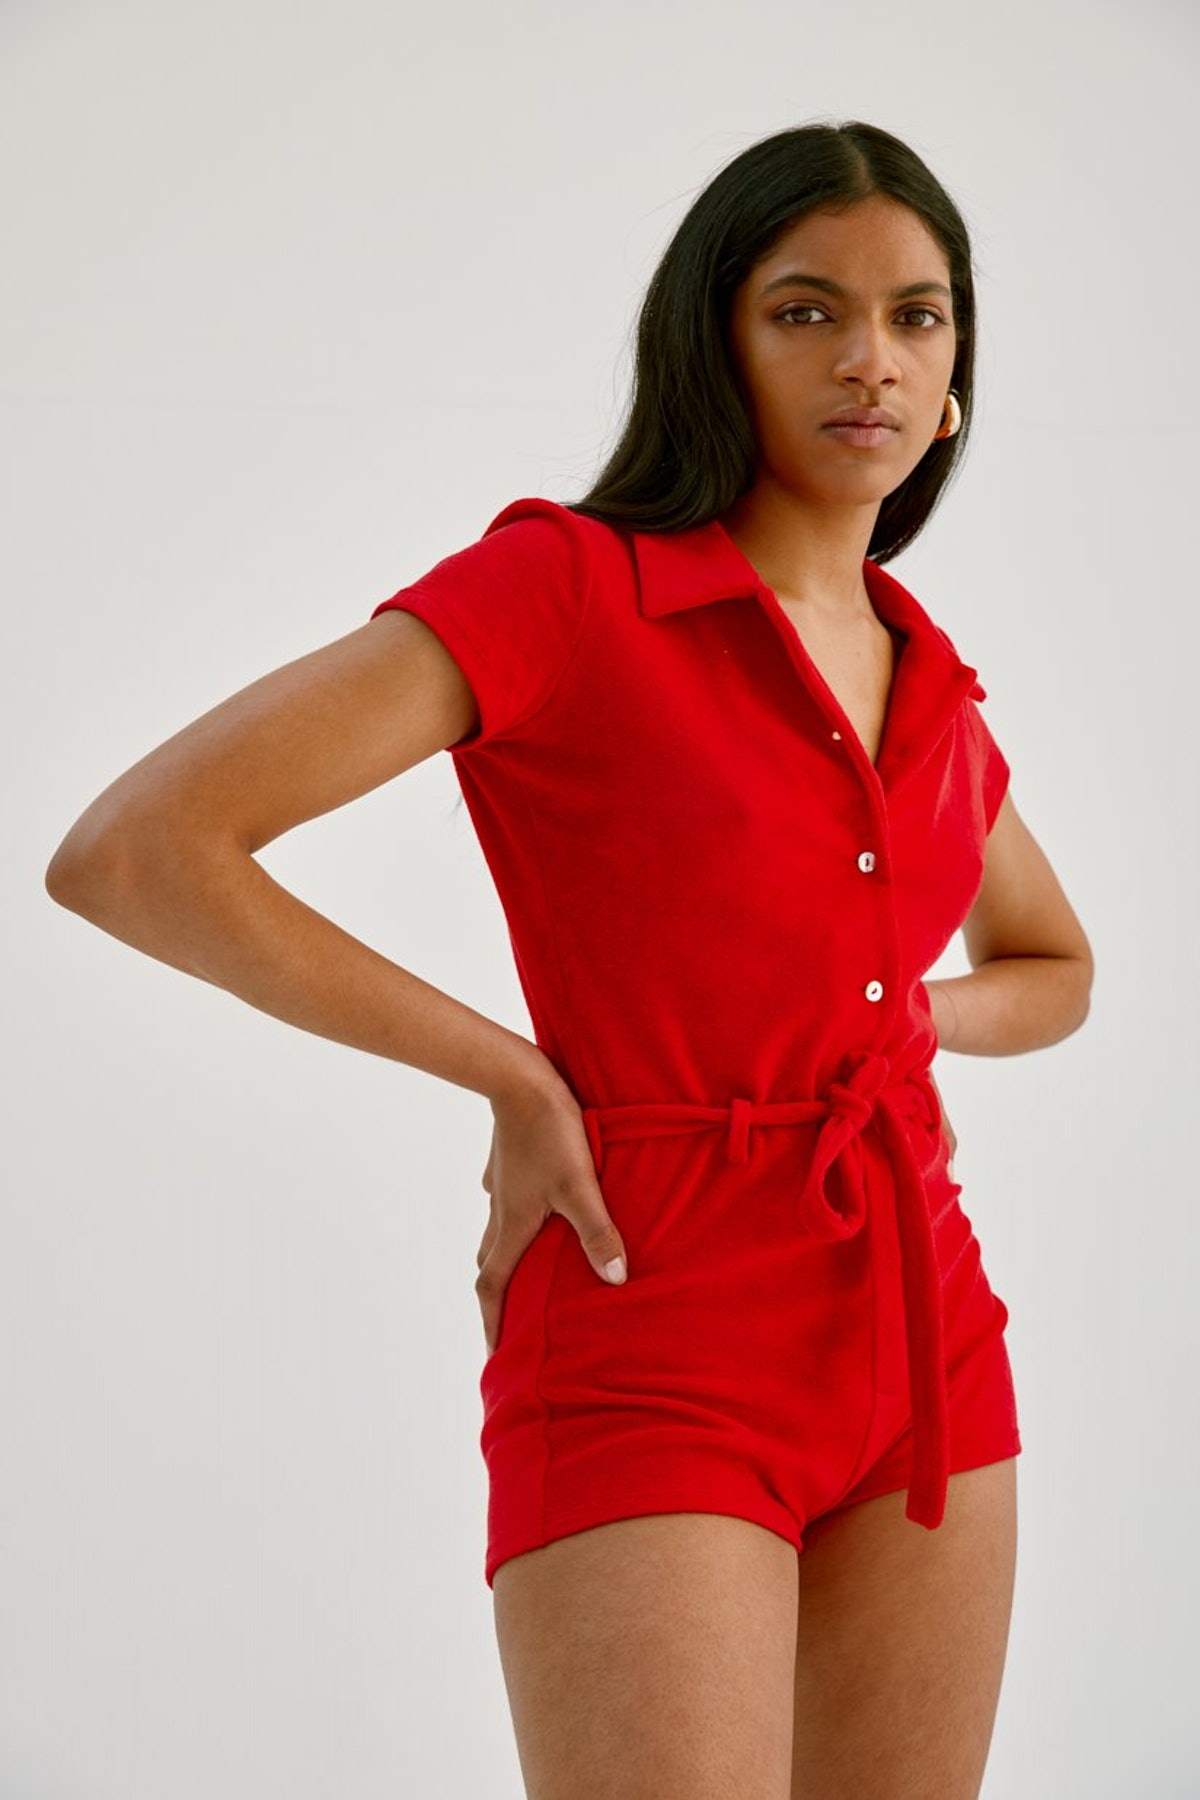 Red Abrazo Jumpsuit in Velour Terry from Musier Paris.